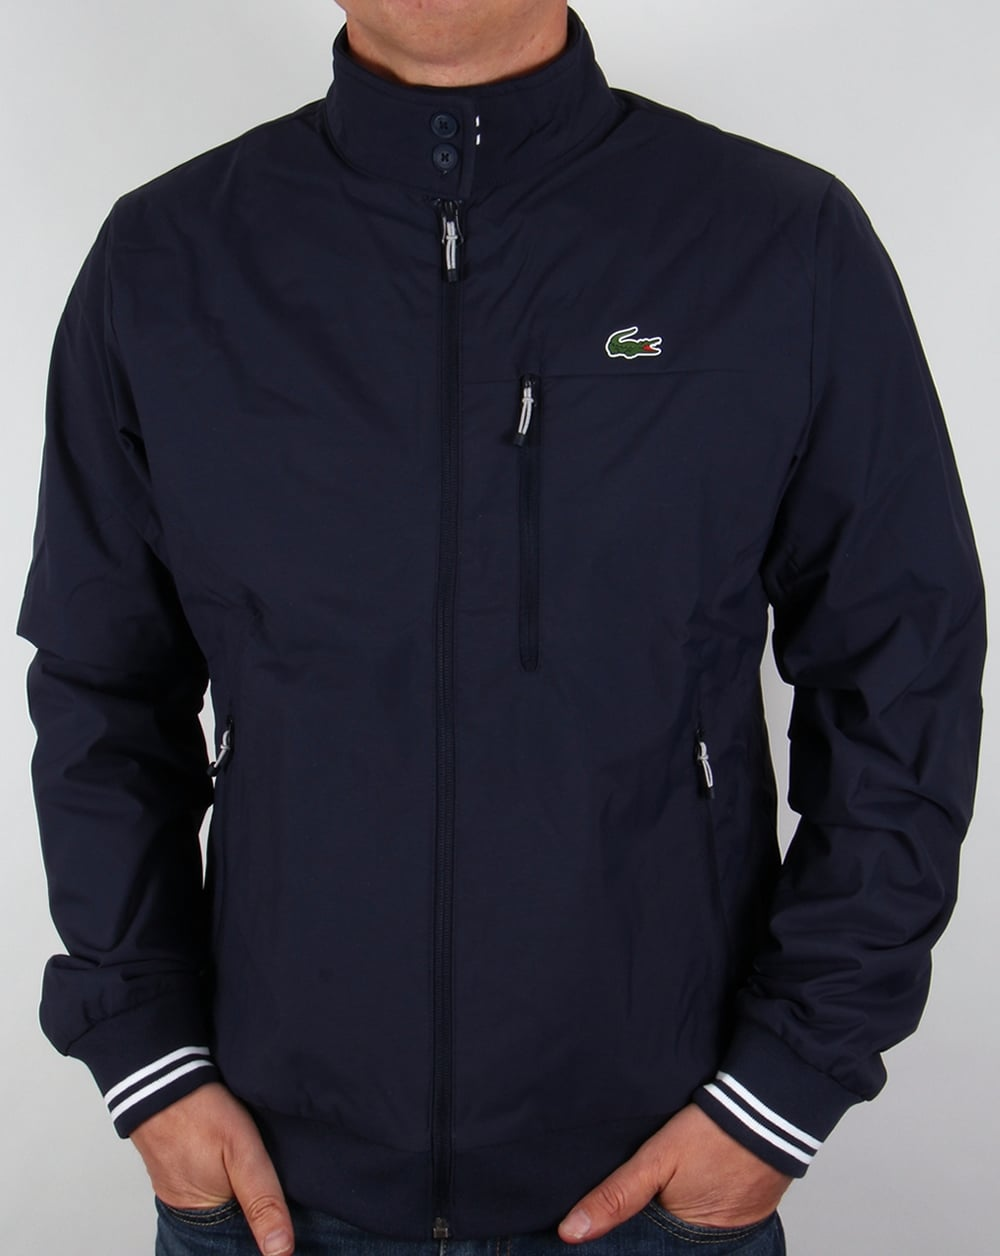 be76a17e3 Lacoste Jacket Related Keywords & Suggestions - Lacoste Jacket Long ...